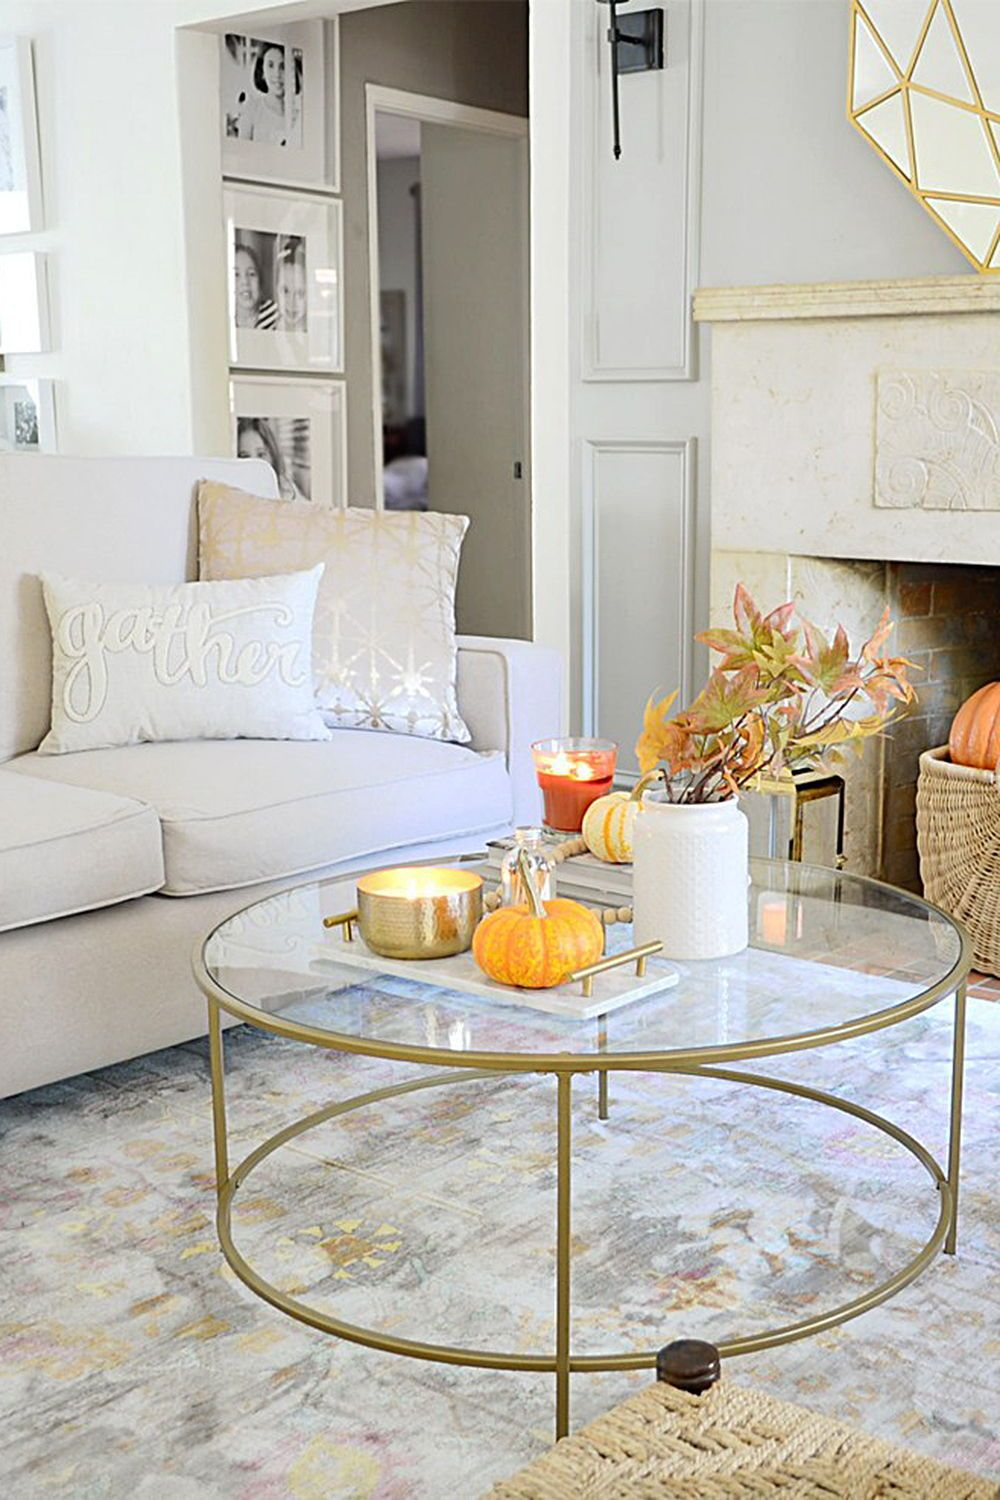 Better Homes & Gardens Nola Coffee Table, Gold Finish - Walmart.com | Affordable Living Rooms, Room, Coffee Table